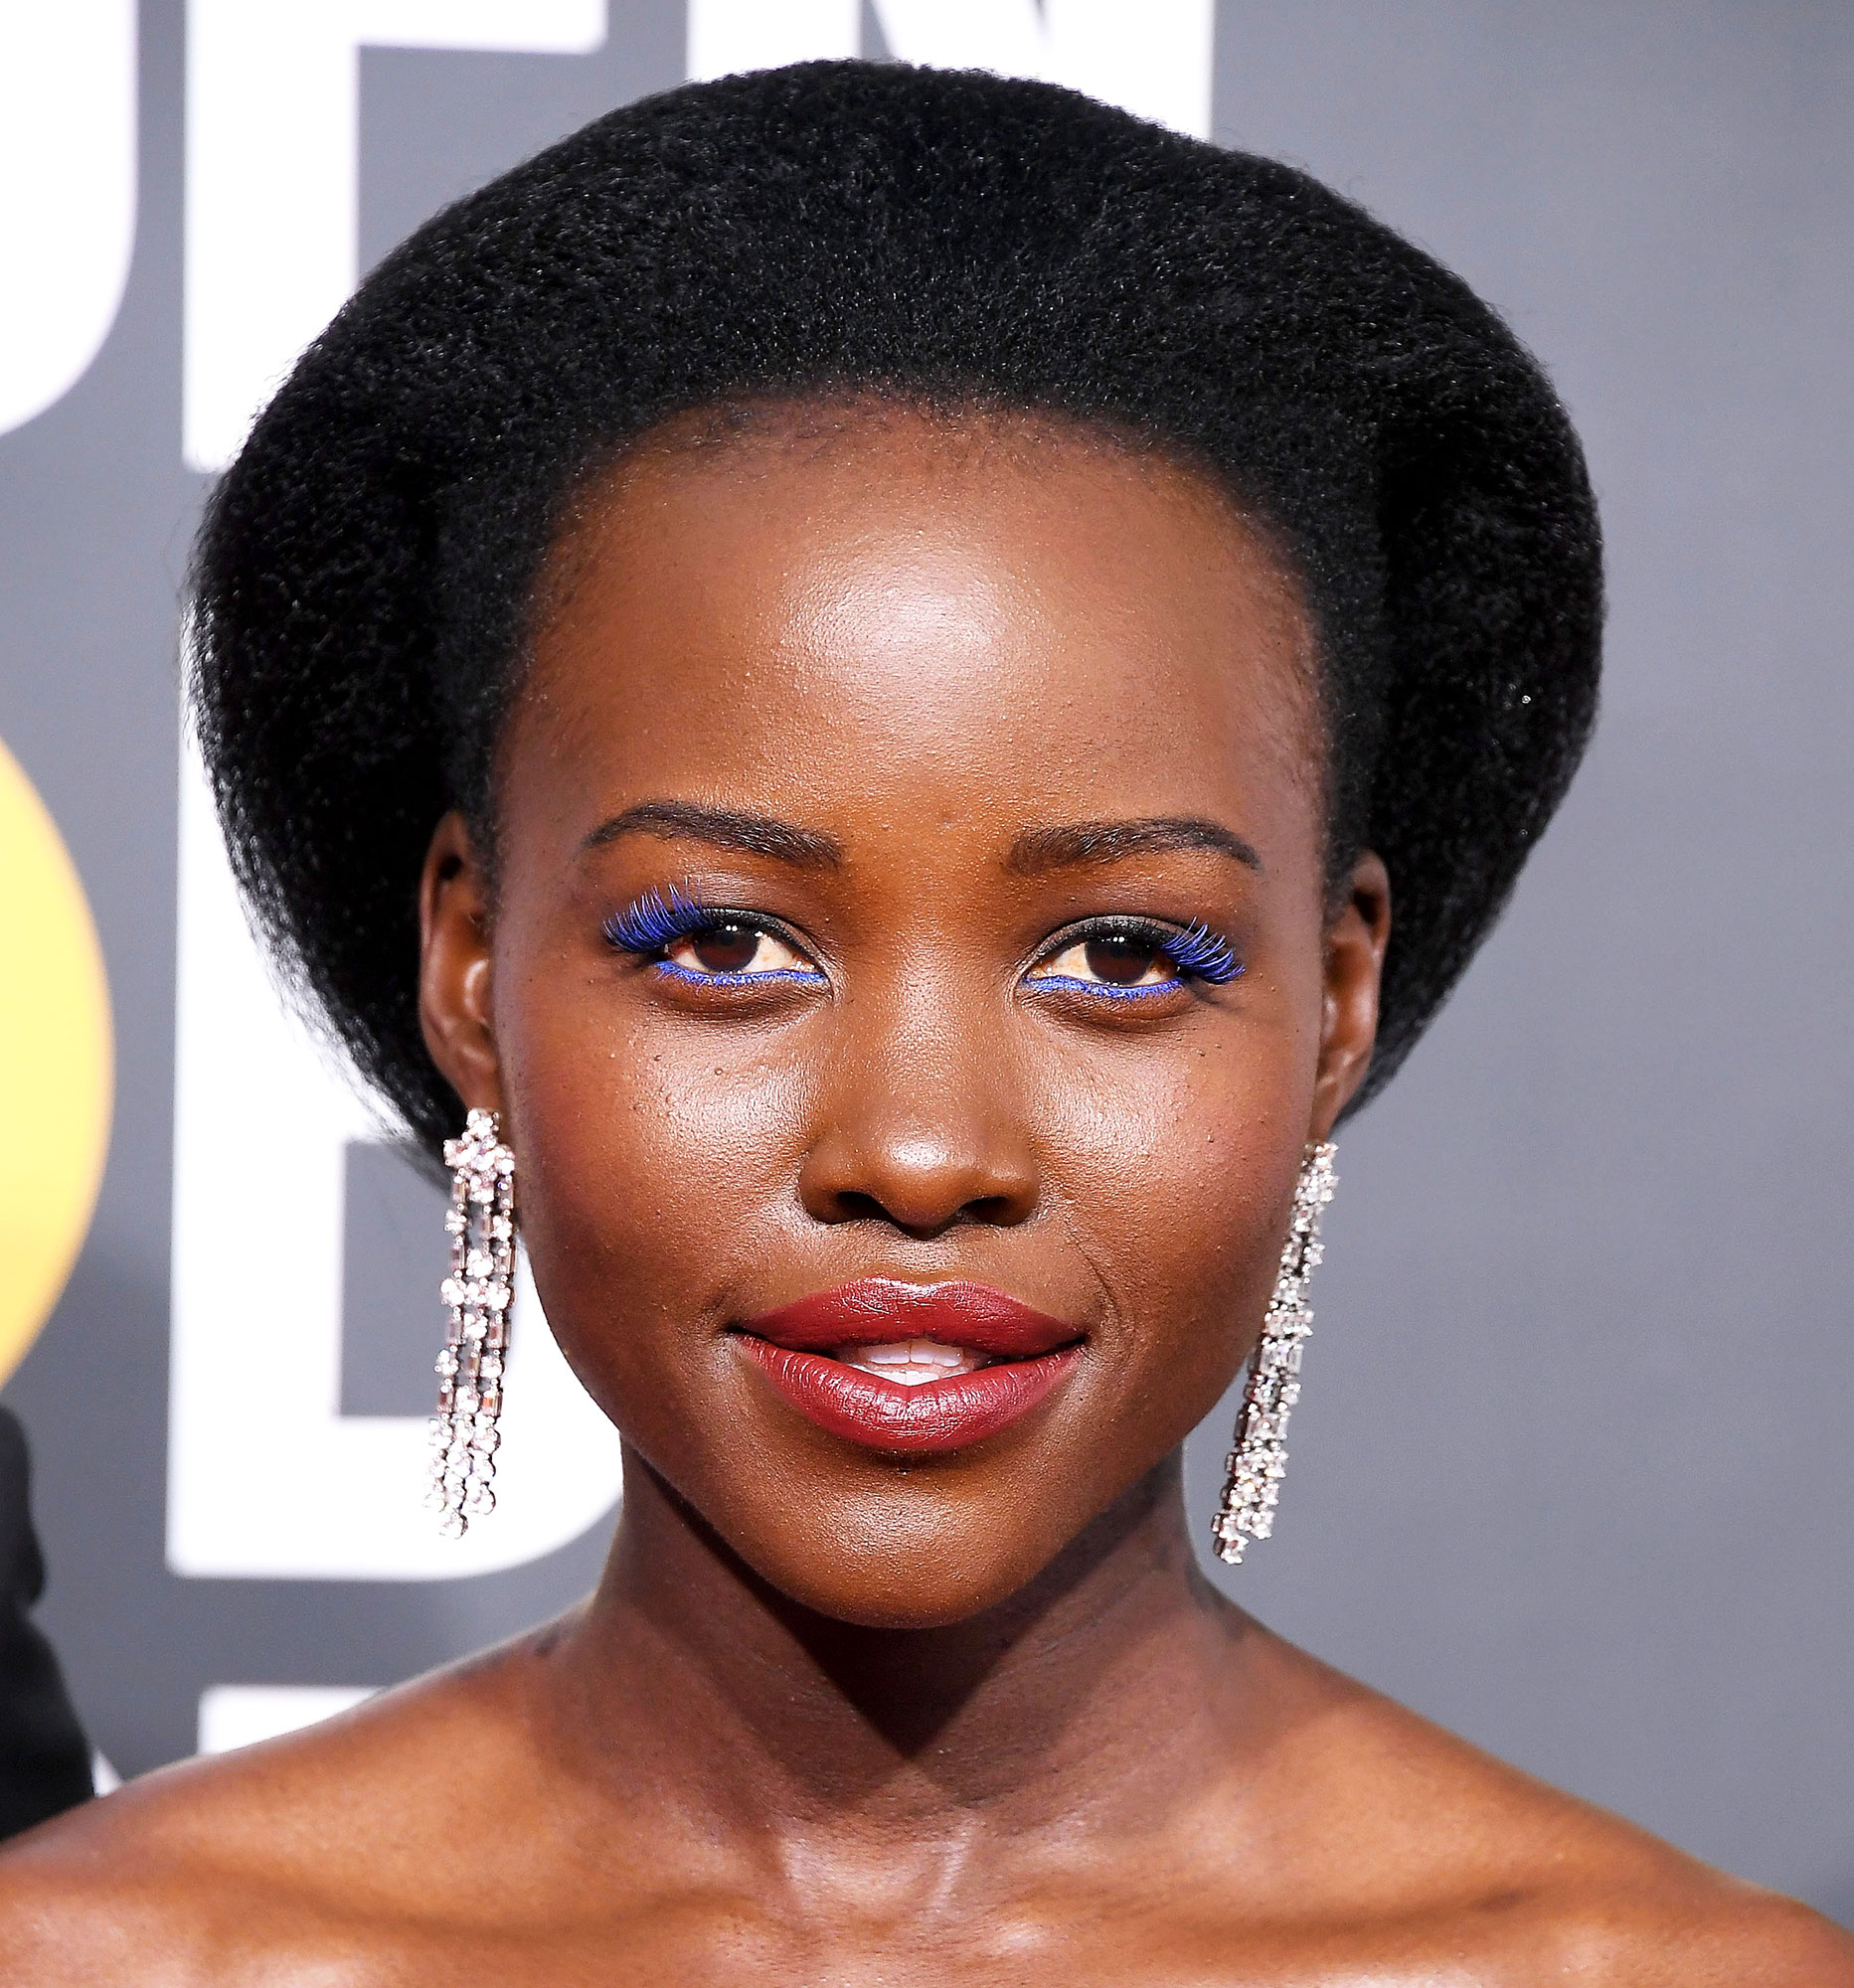 """Lupita Nyong'o Celebs Are Here With All the Coachella Beauty Inspo You Need - A combination of the Lancome Drama Liqui-Pencil eyeliner in Cote d'Azur and Lashify Prismatic Gossamer falsies in Royal Blue on outer corners proved to be the perfect pair for the Us star at the 2019 Golden Globes. Her go-to makeup artist Nick Barose called the look """"a lil bit '80s fun,"""" and we couldn't agree more."""